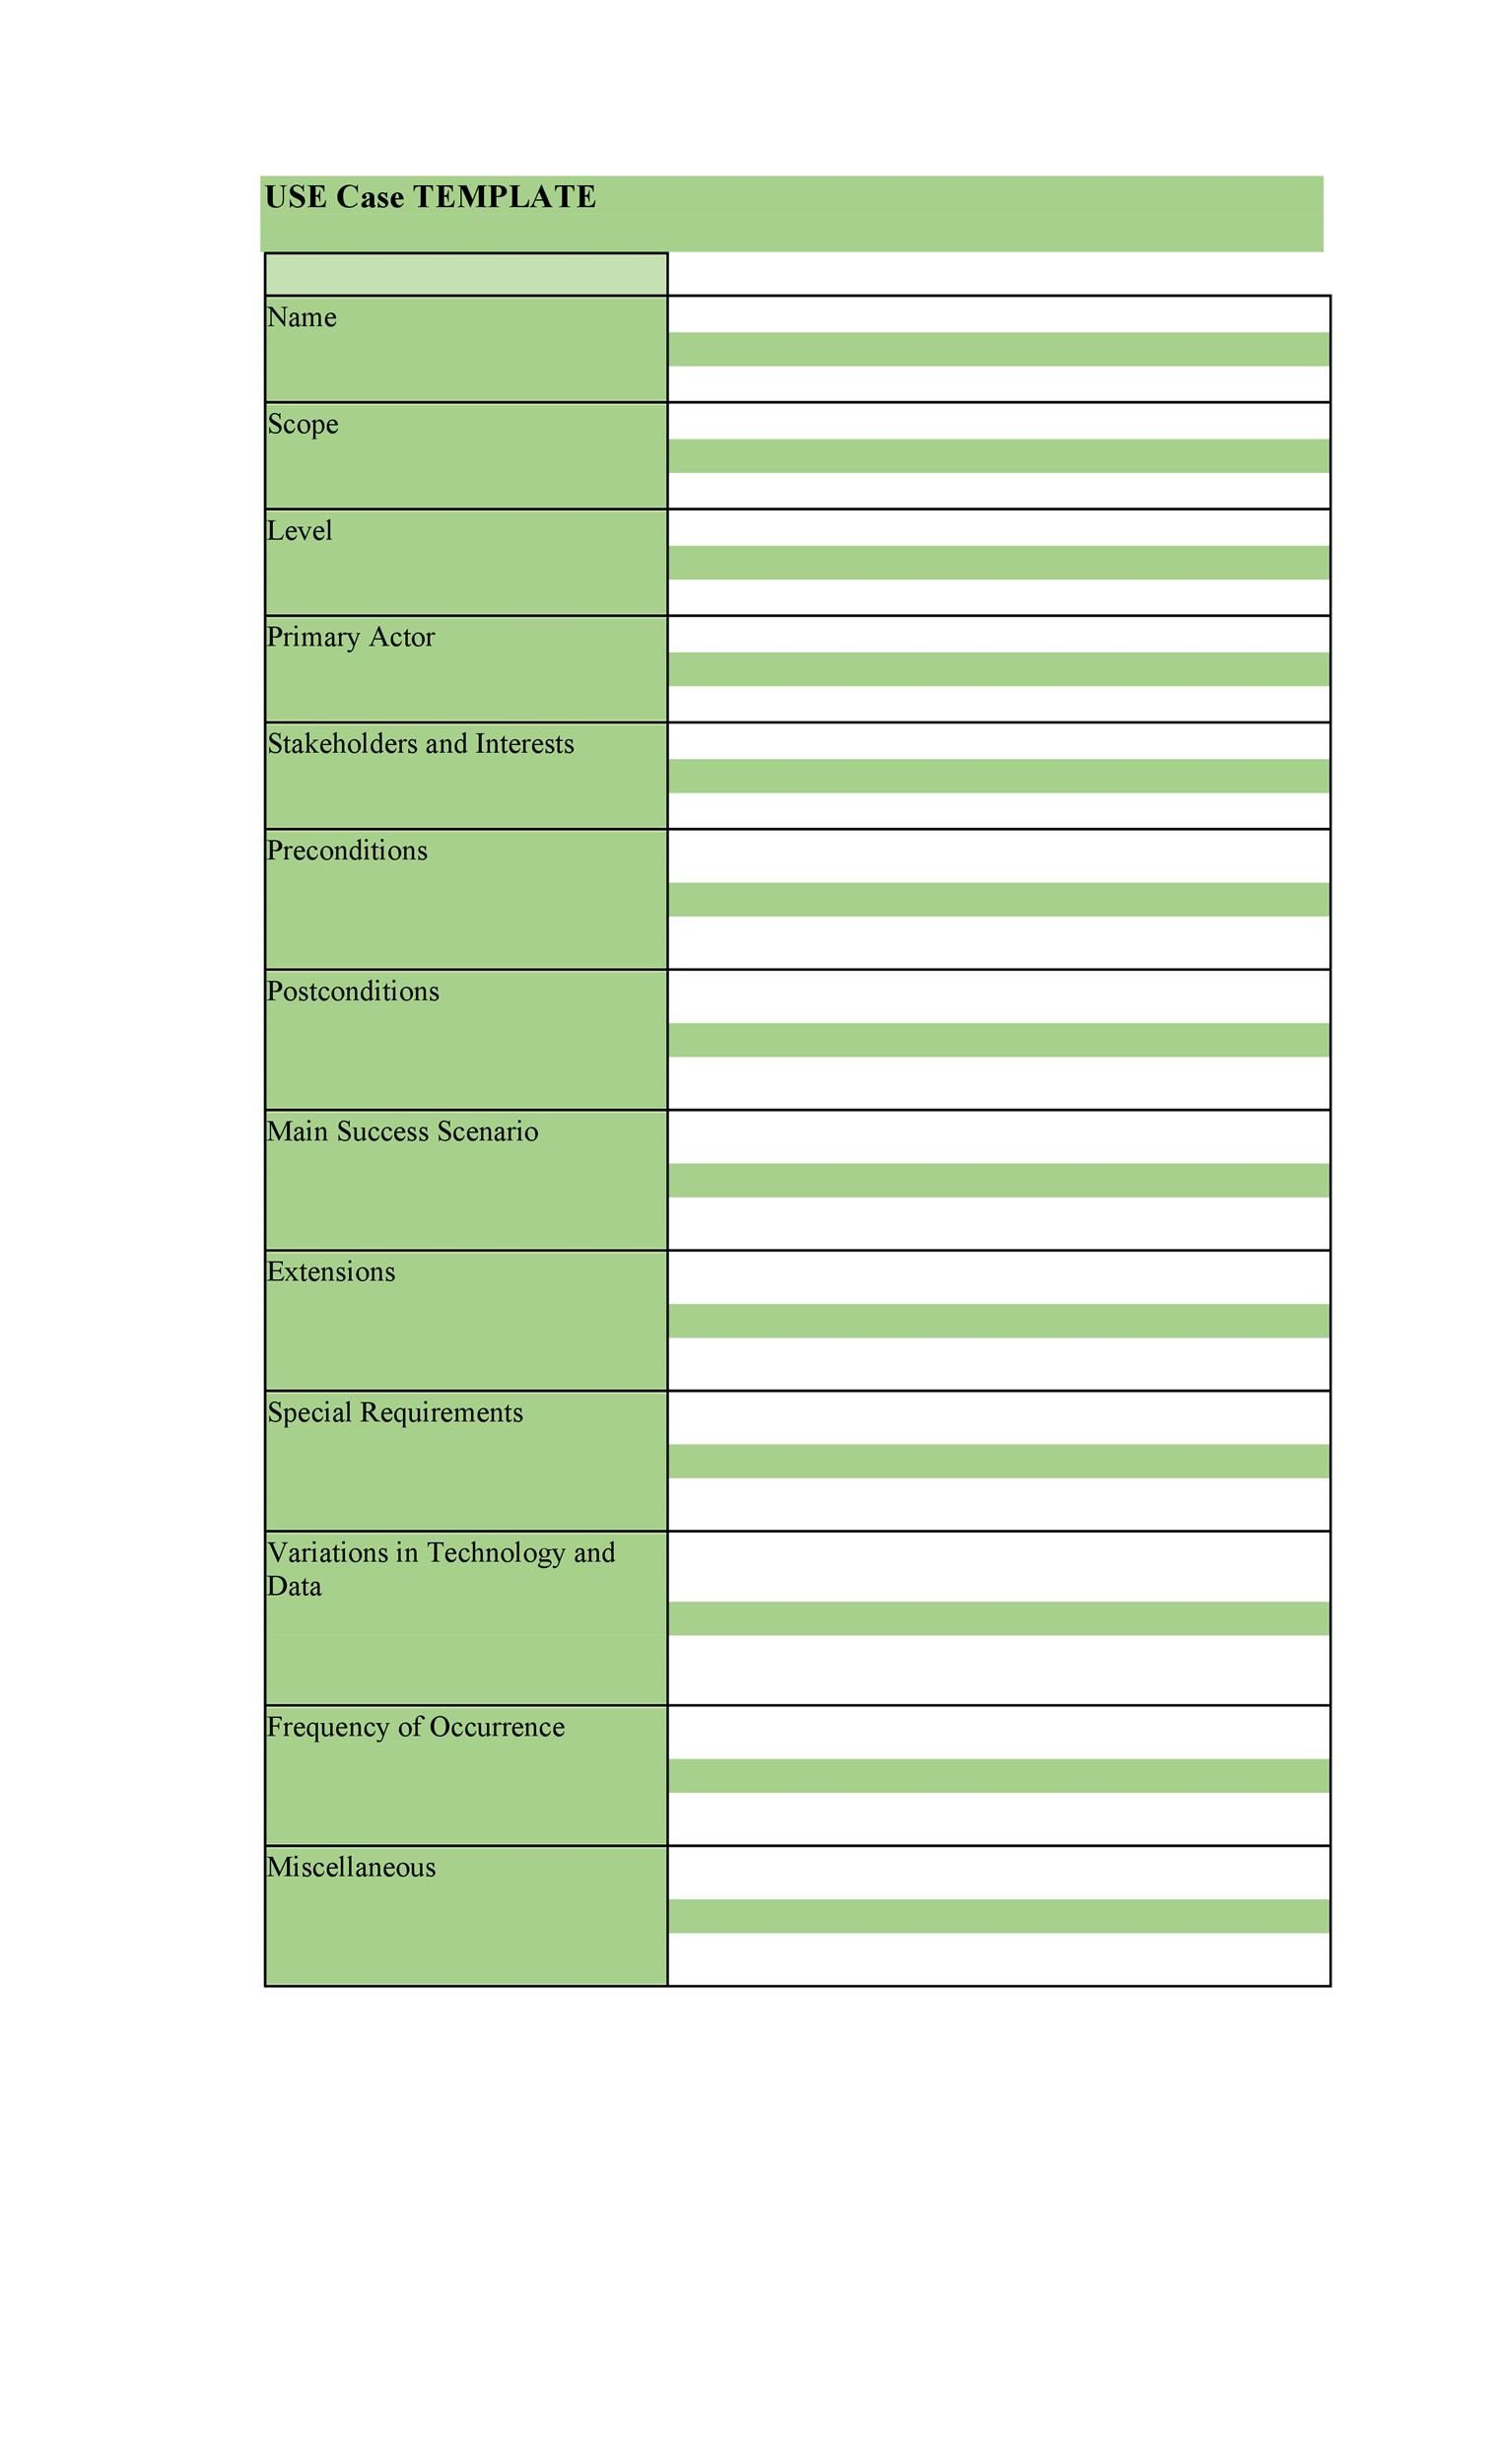 006 Awesome Use Case Template Word Idea  Doc Test